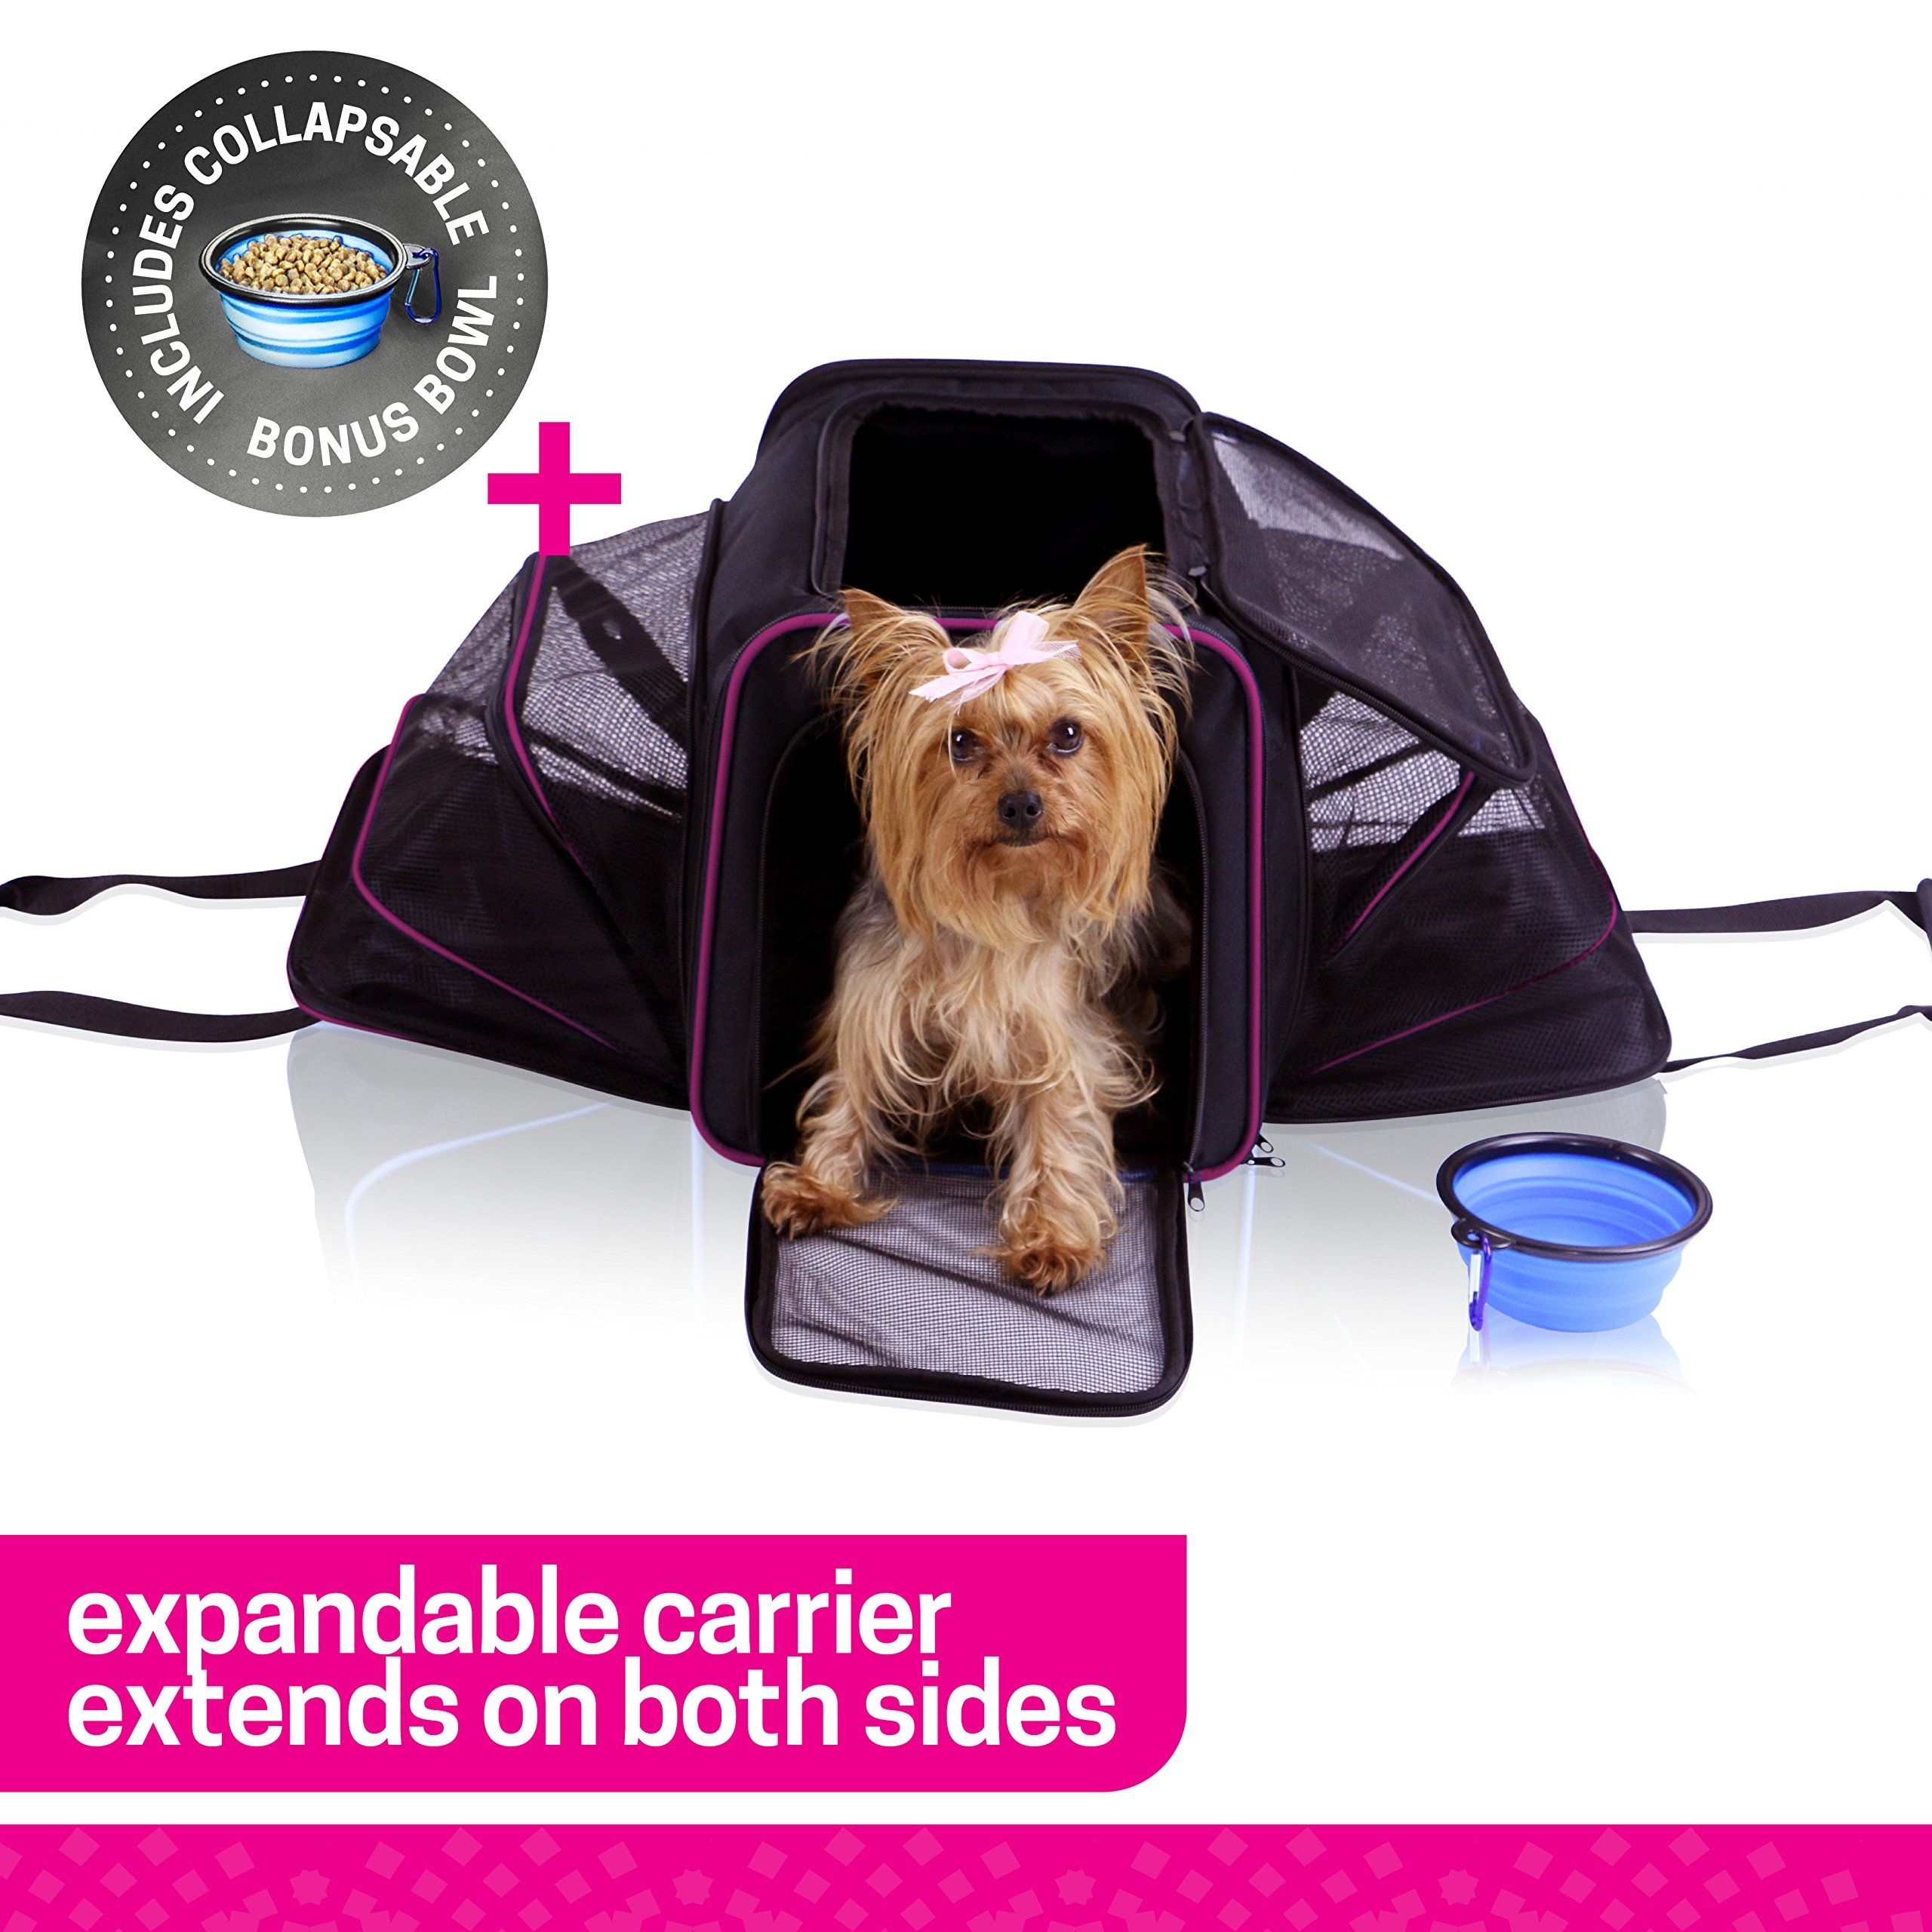 c183286b42 Ruff n Ruffus Dual Expandable Soft Pet Carrier FREE BOWL Airline Approved  Safe for use as pet Car Seat For Dogs Cats and Small Pets Two Sided  Expandable ...